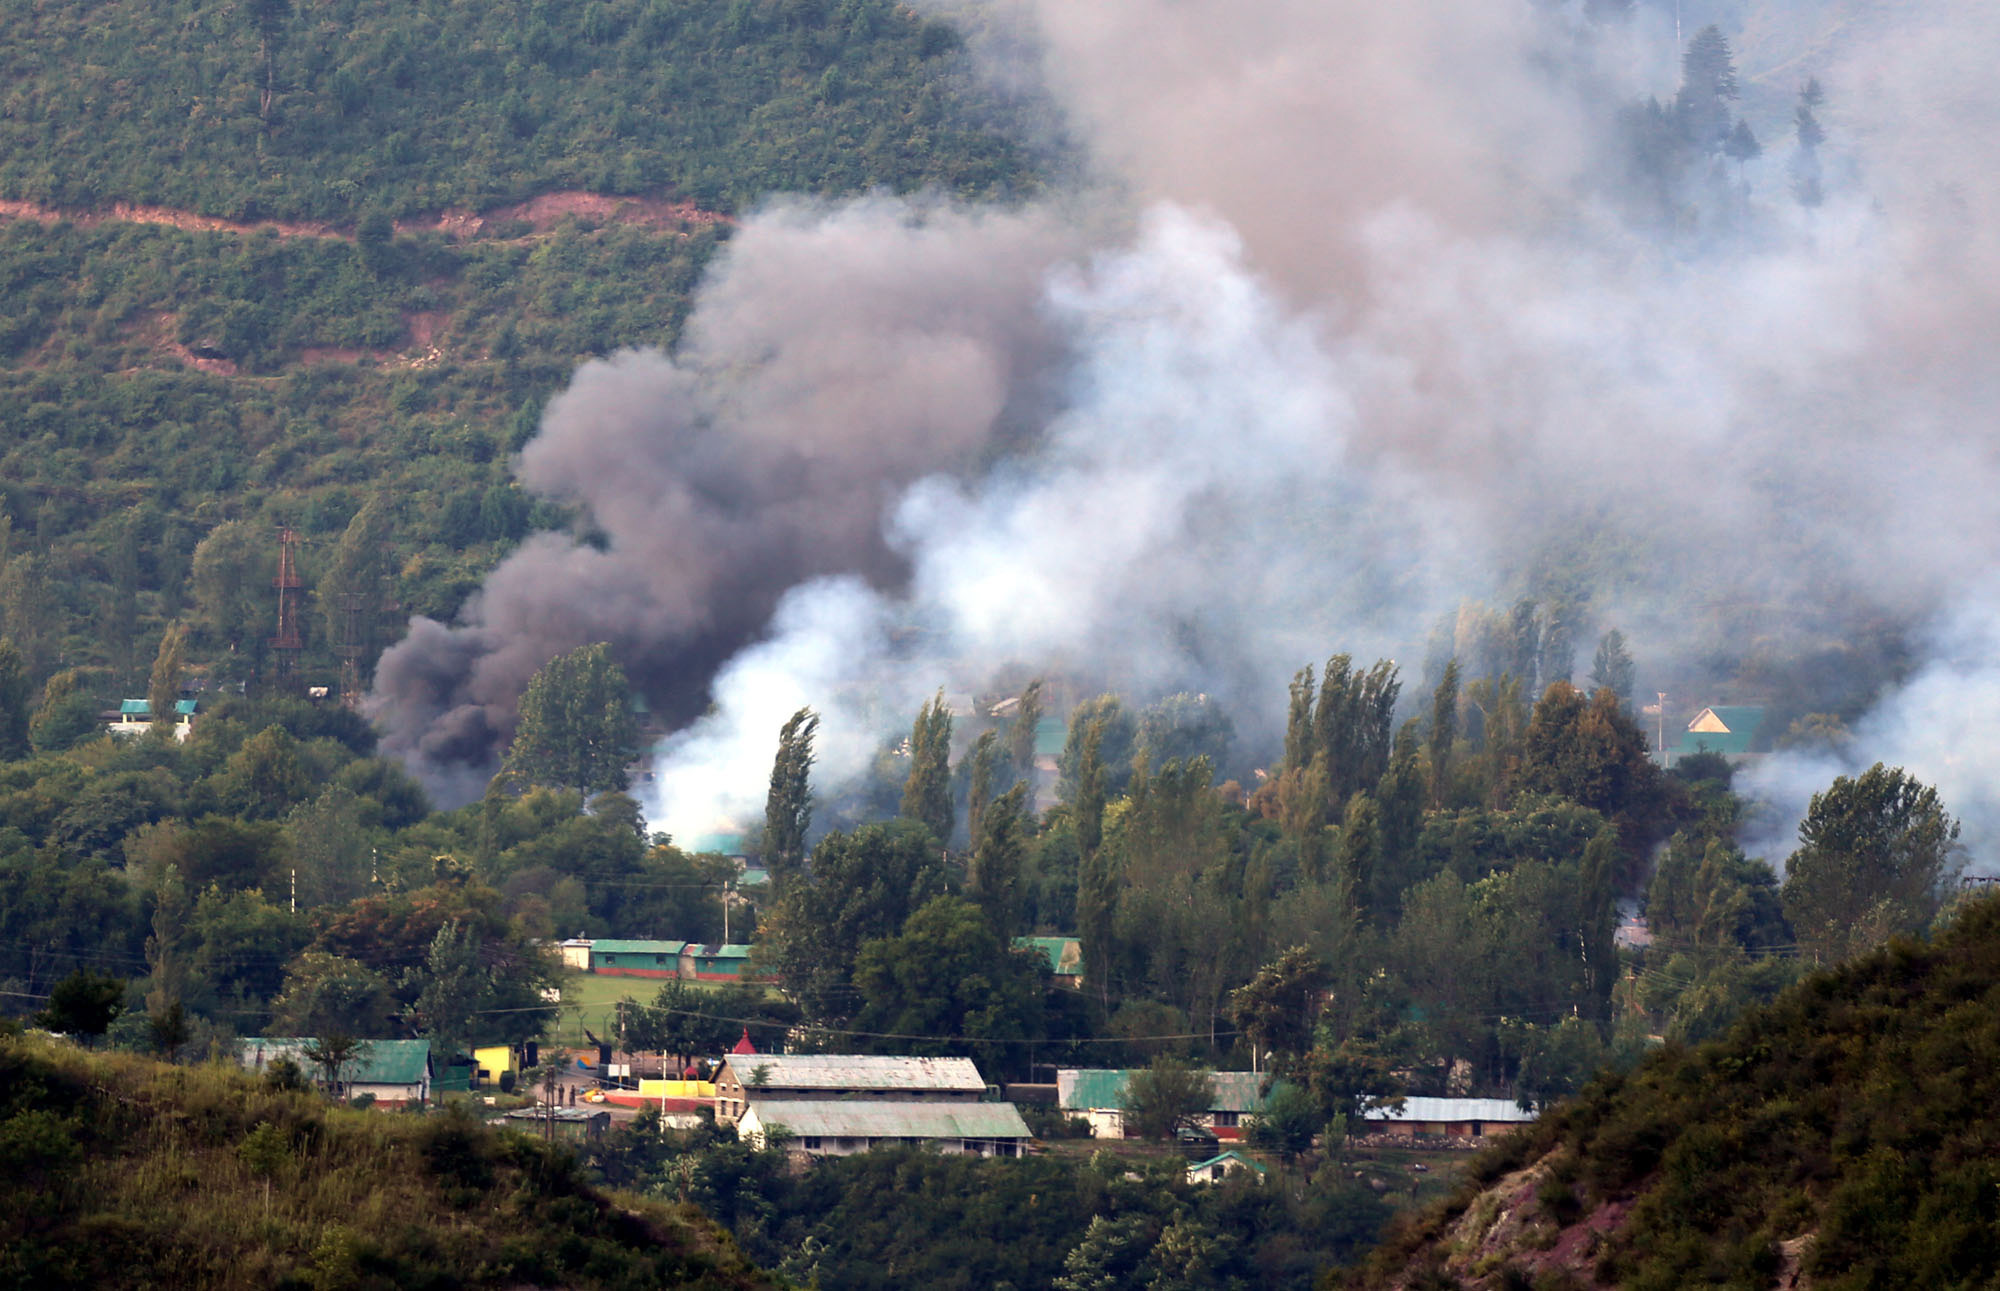 Smoke rises from the army base which was attacked by militants in the town of Uri, west of Srinagar, on September 18, 2016 in Srinagar, India.